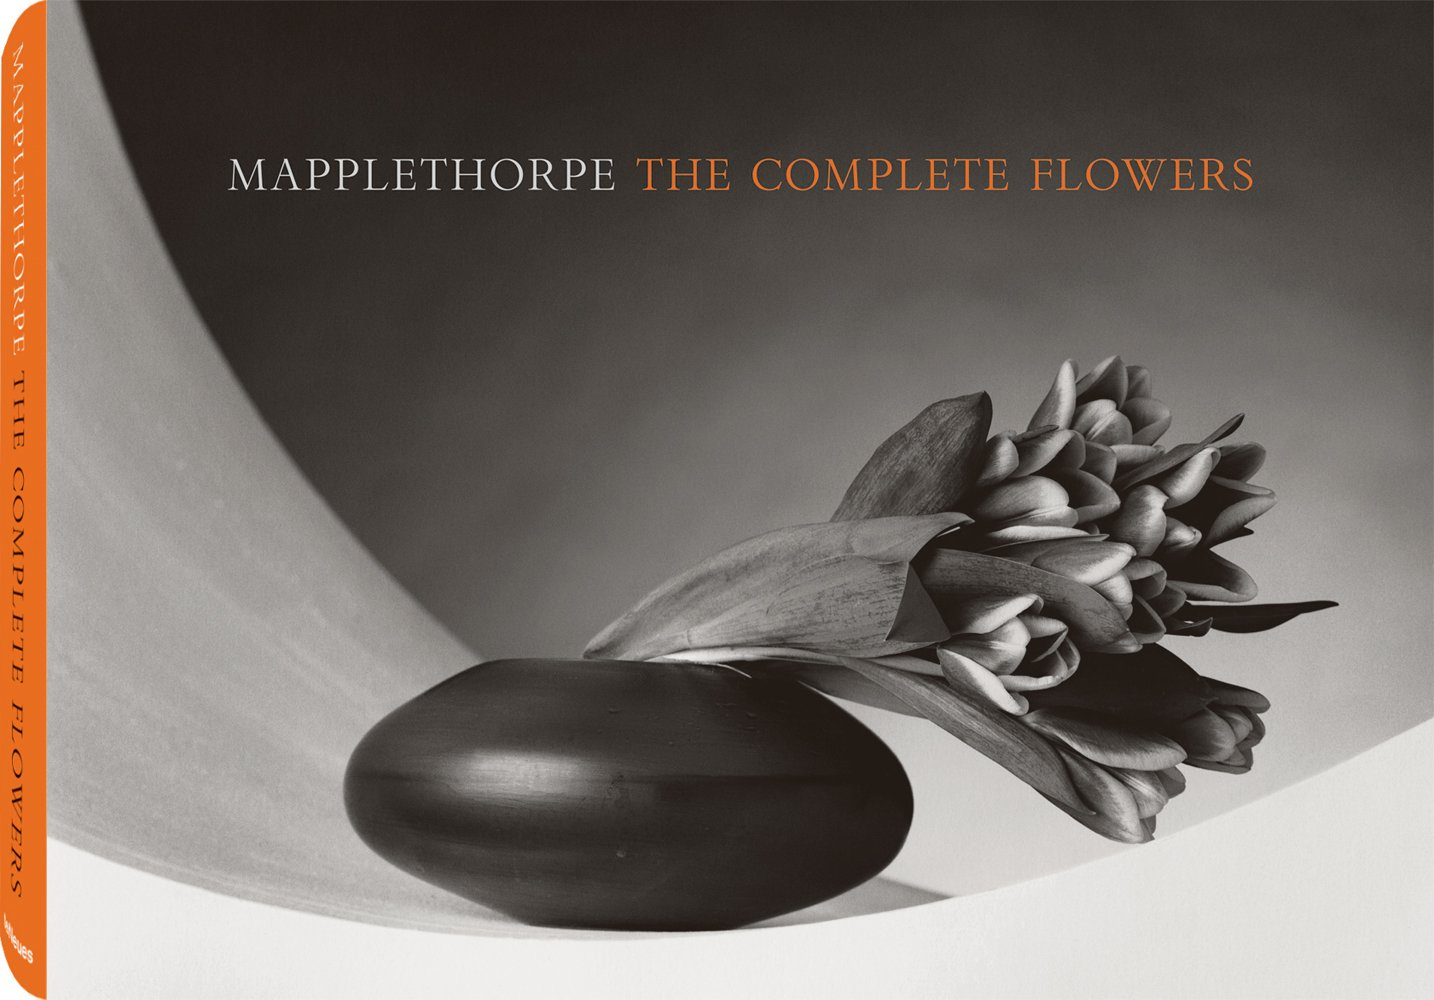 Mapplethorpe The Complete Flowers by Brand: teNeues